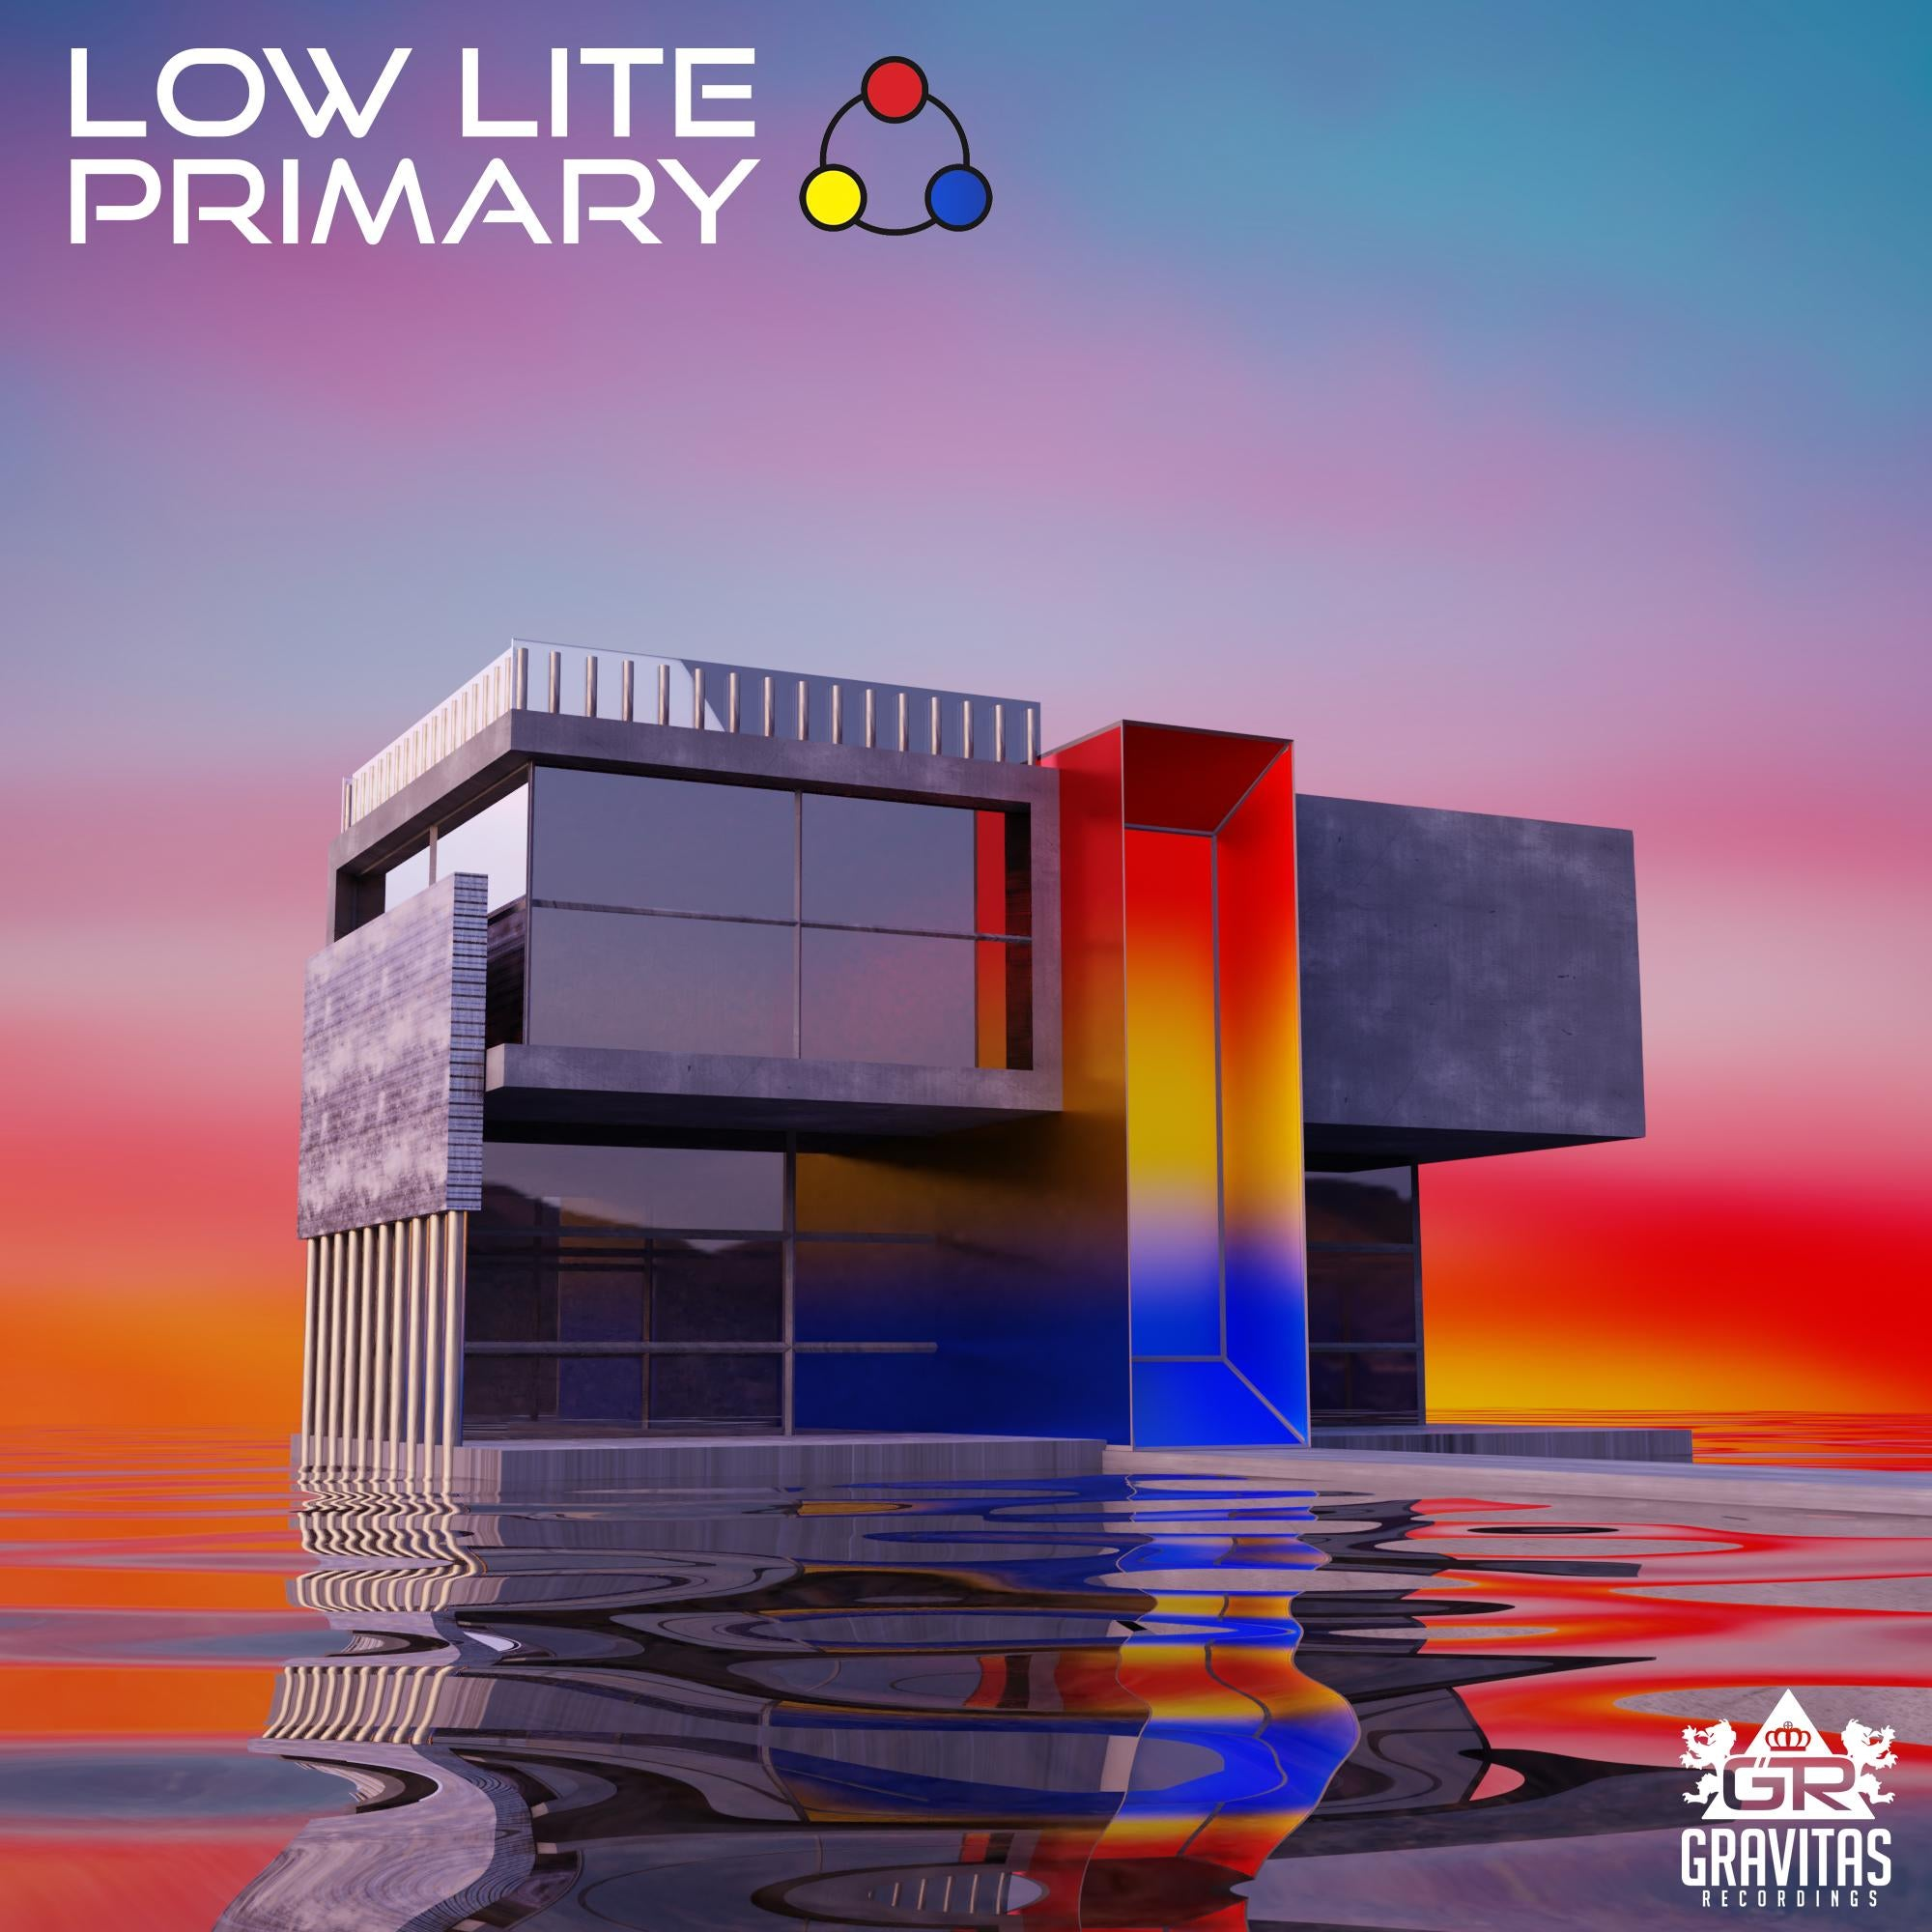 [EXCLUSIVE] Upcoming Artist Low Lite Discusses New EP, Primary